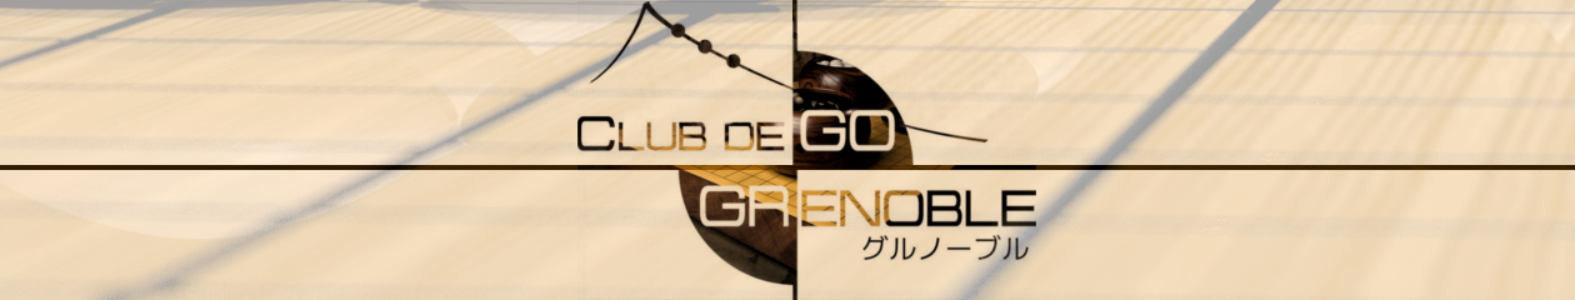 Club de Go Grenoble